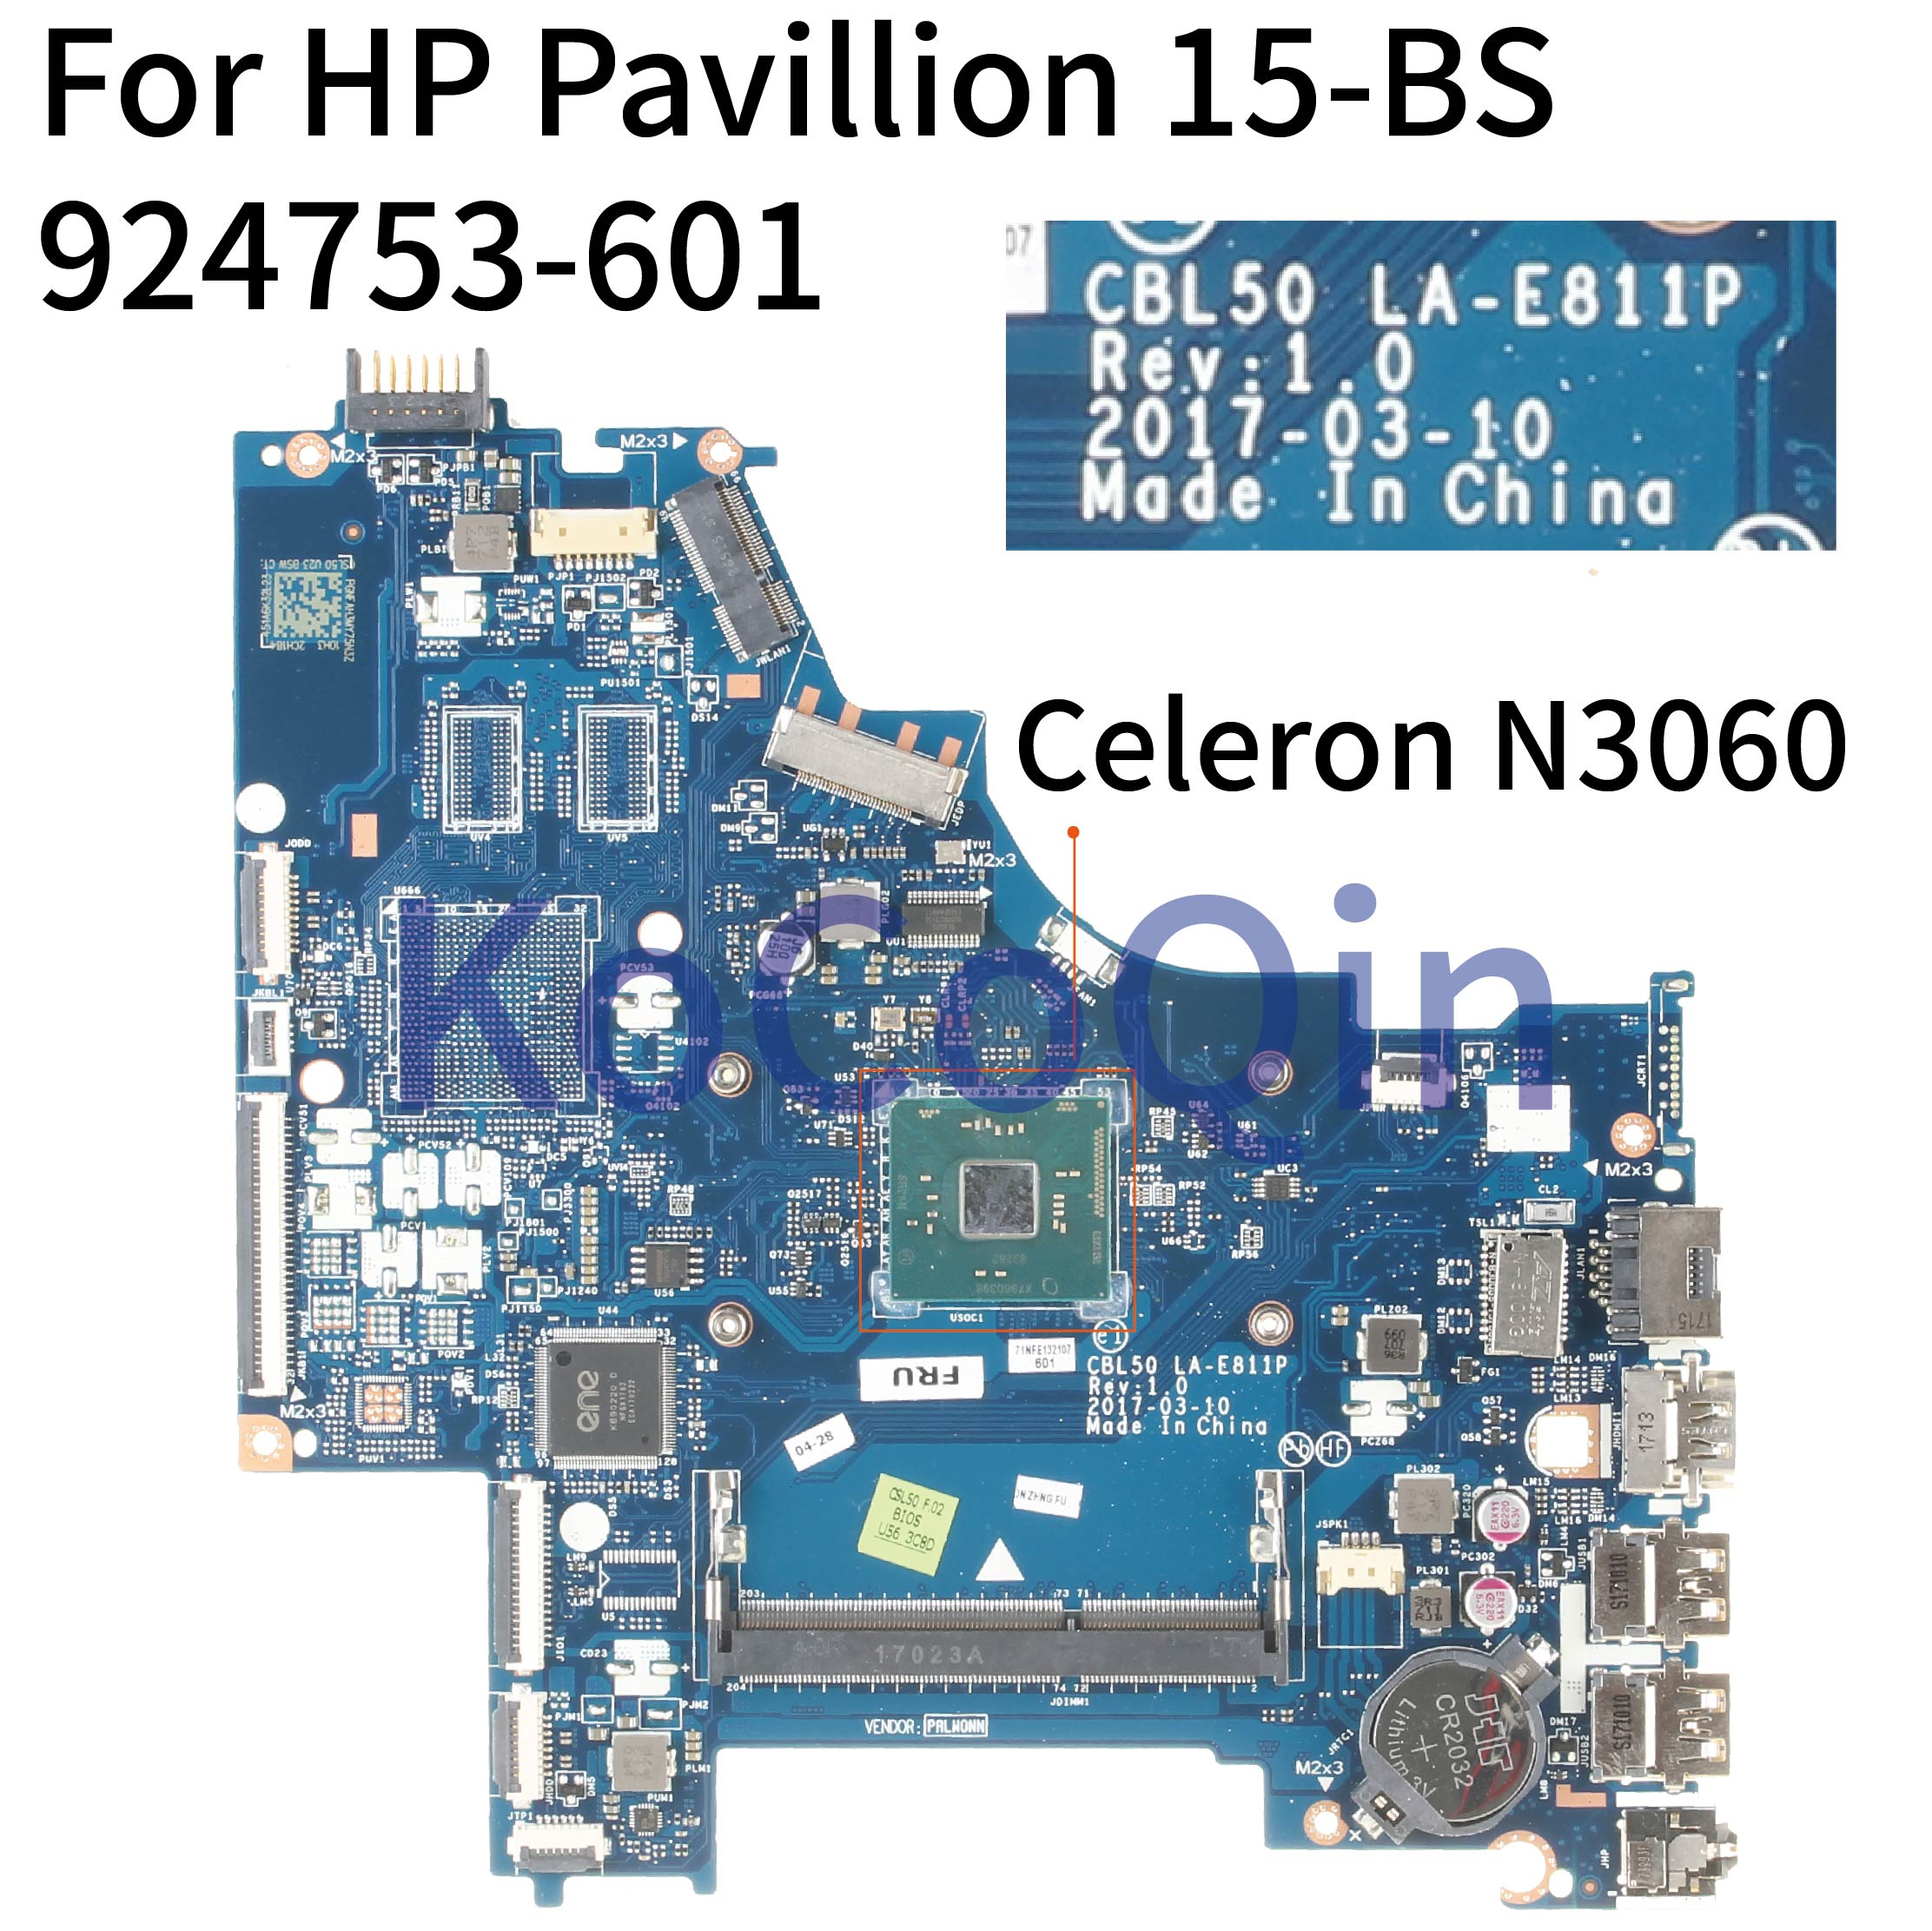 KoCoQin Laptop Motherboard For HP Pavillion 15-BS Core SR2KN Celeron N3060 Mainboard 924753-601 LA-E811P